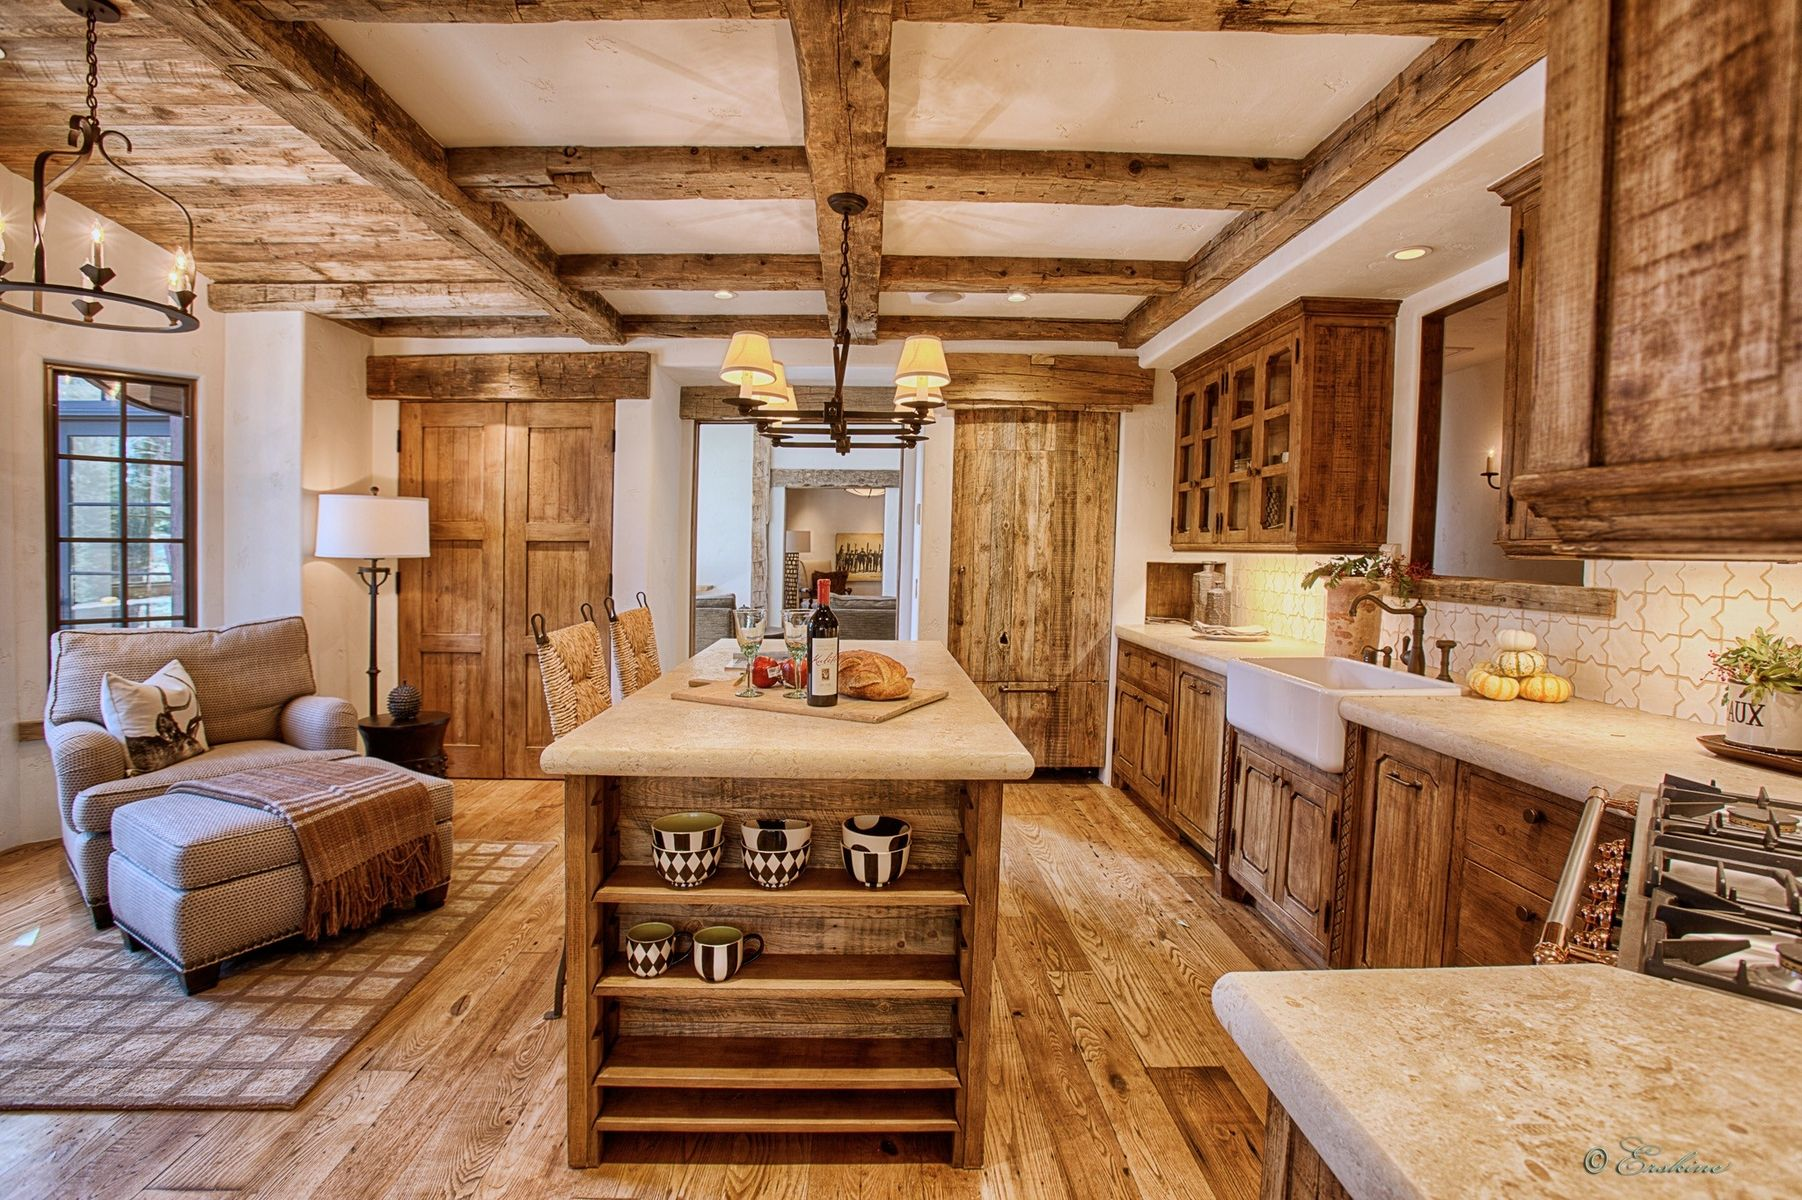 ideas about wooden kitchen cabinets on pinterest natural kitchen cabinets and wood wood kitchen cabinets Wood Kitchen Furniture Images About Kitchens On Pinterest Countertops Cherry Kitchen Cabinets And Wood